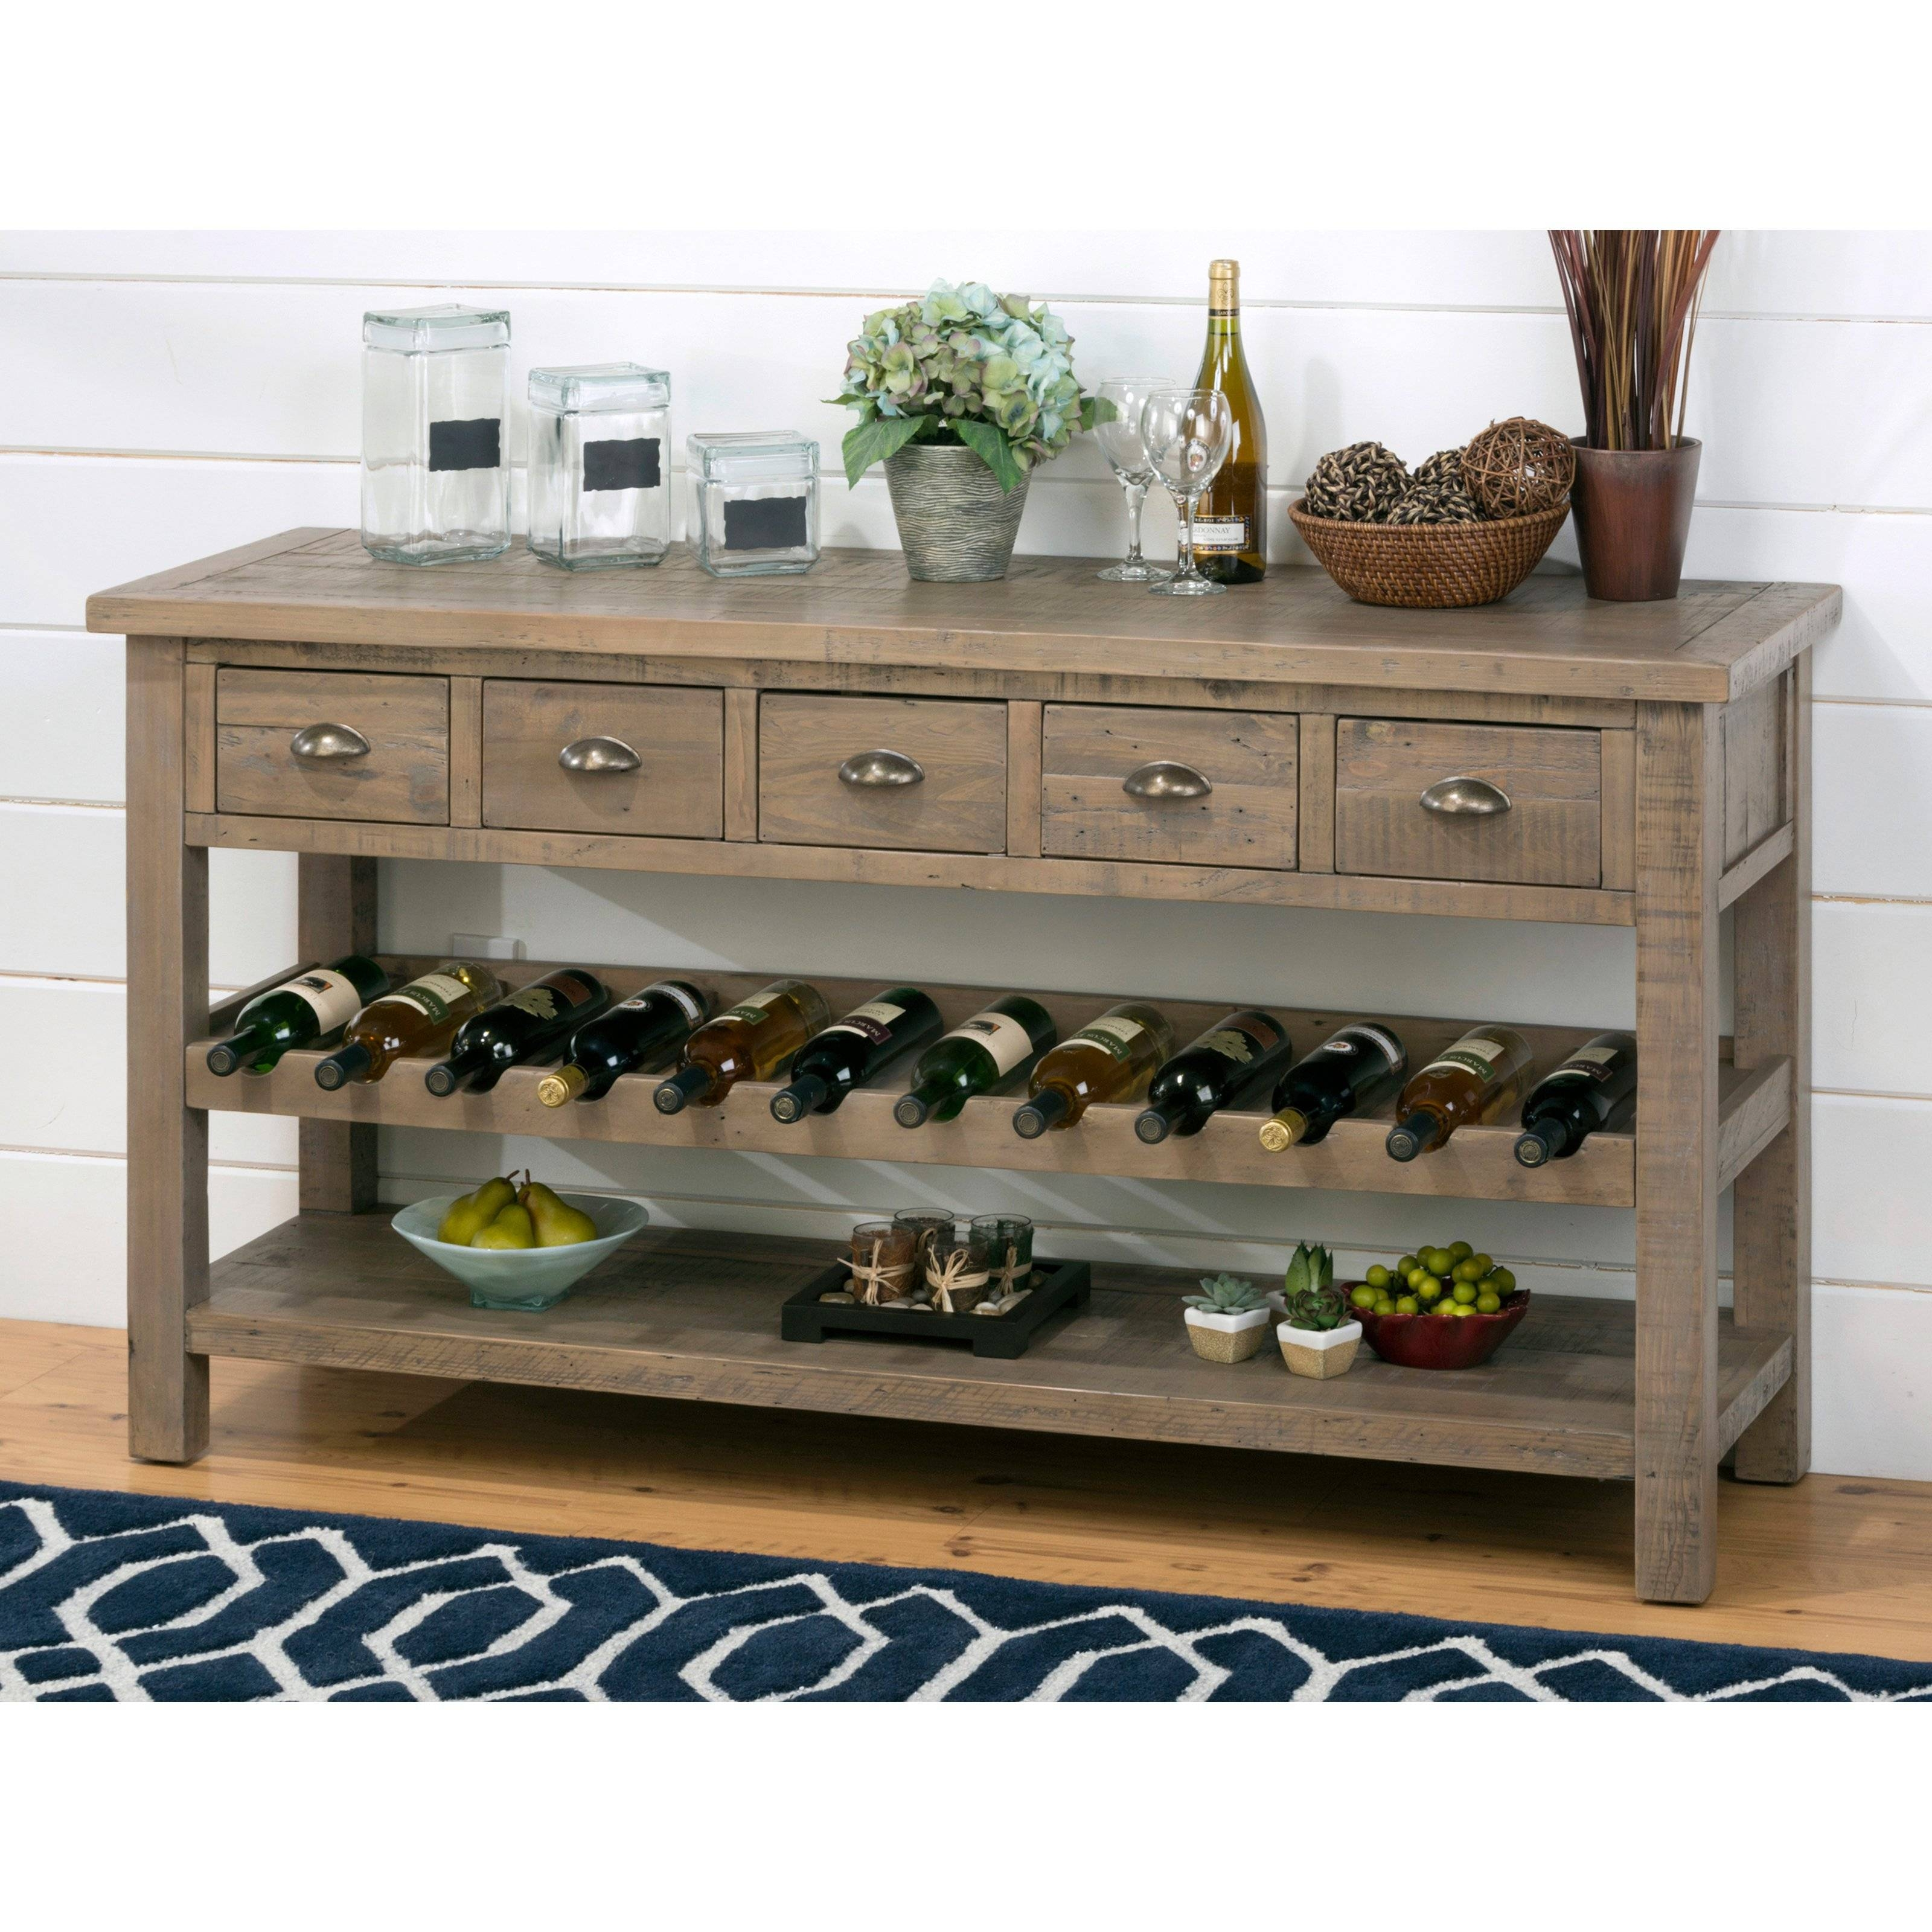 Enchanting Buffet With Wine Rack Decor Ideas (View 6 of 20)